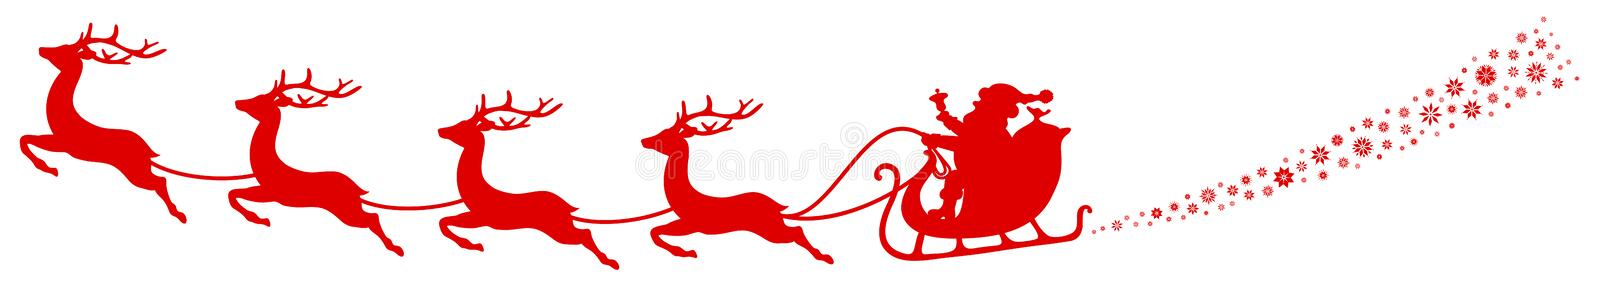 Turbinio rosso di Sleigh Santa And Four Flying Reindeers di Natale royalty illustrazione gratis